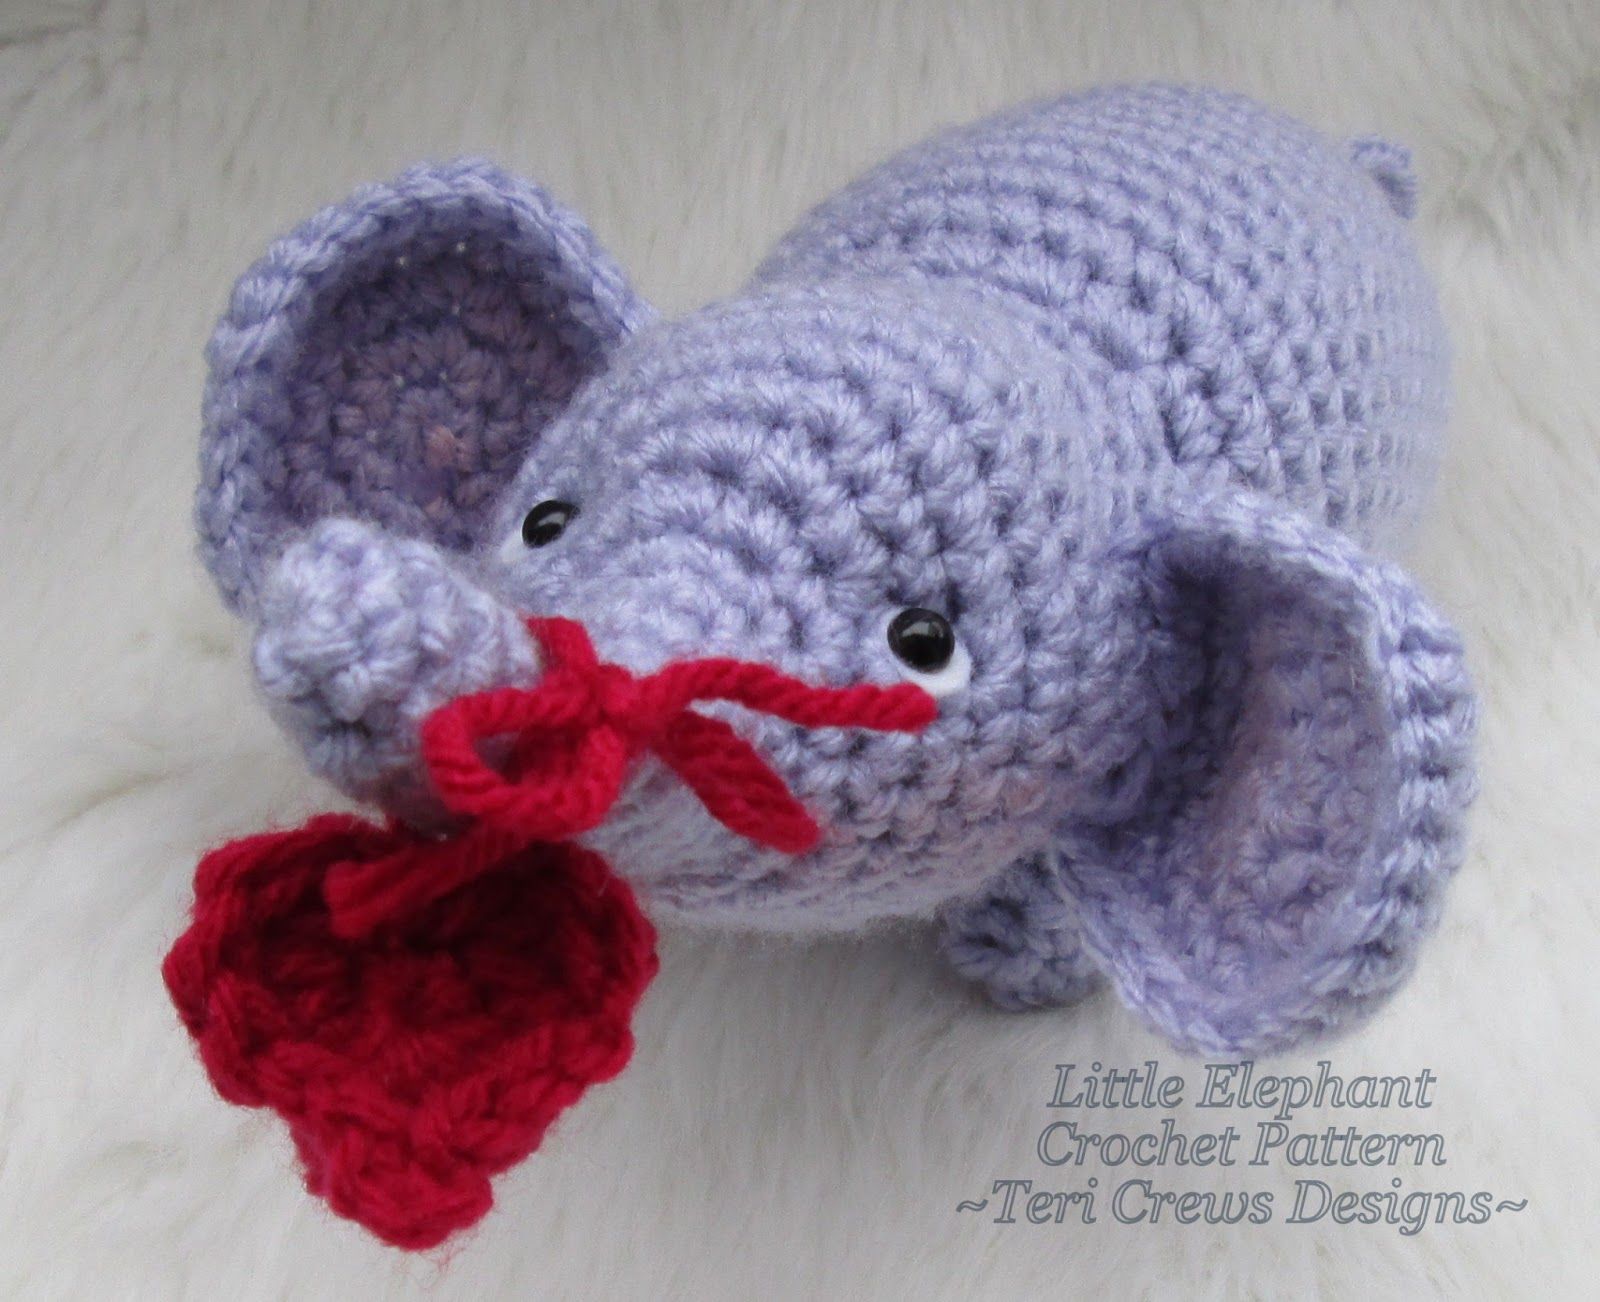 Crochet Patterns Elephant : Teris Blog: Free Little Elephant Crochet Pattern